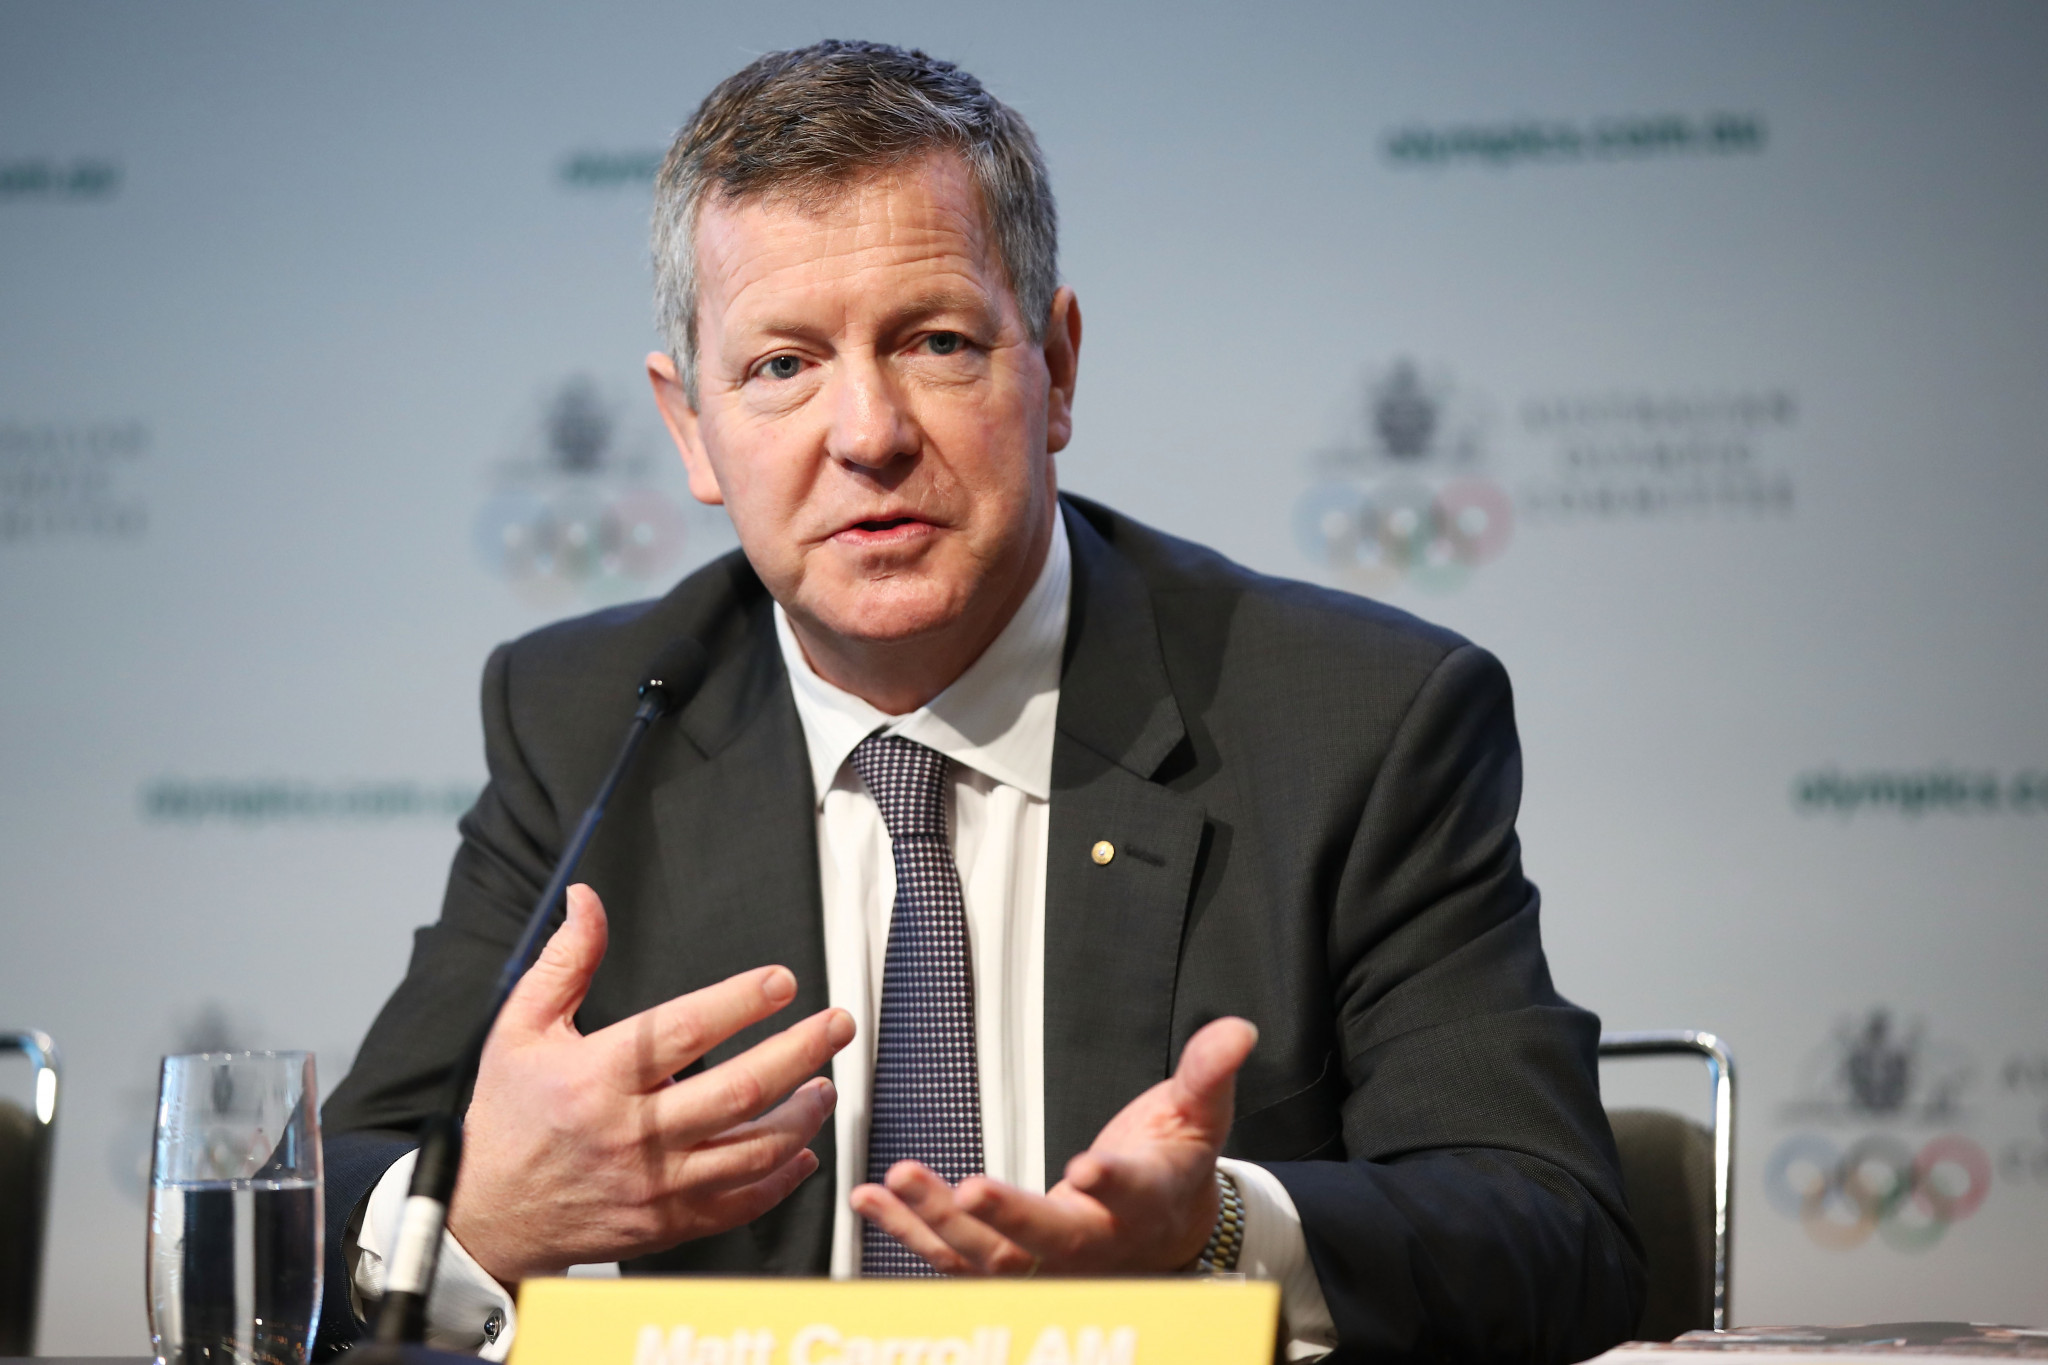 Australian Olympic Committee welcome selection of Gold Coast as SportAccord Summit host